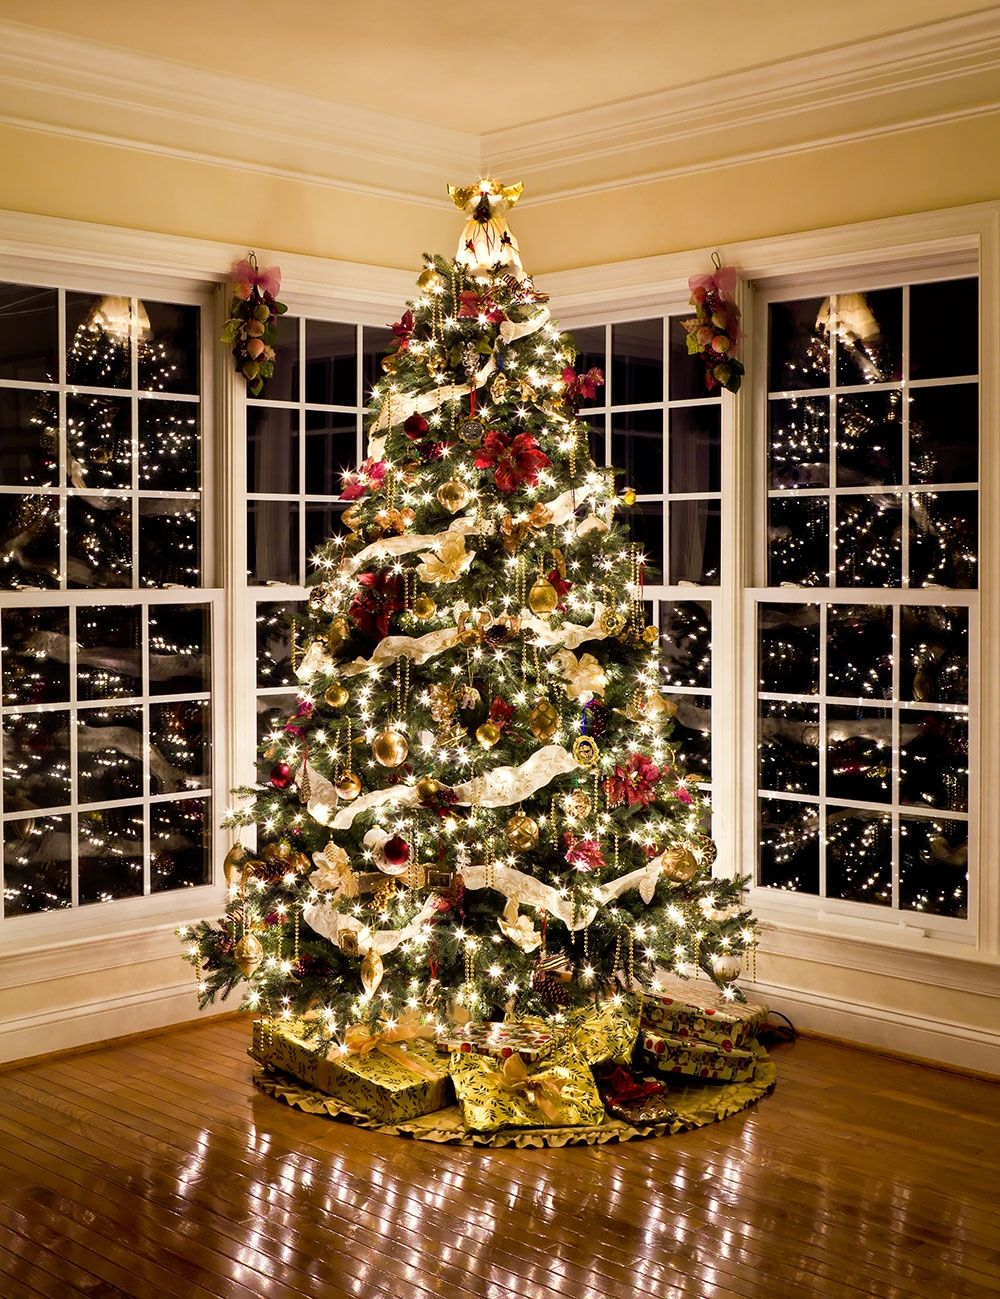 Interior Design Christmas Decorating For Your Home Interior Design